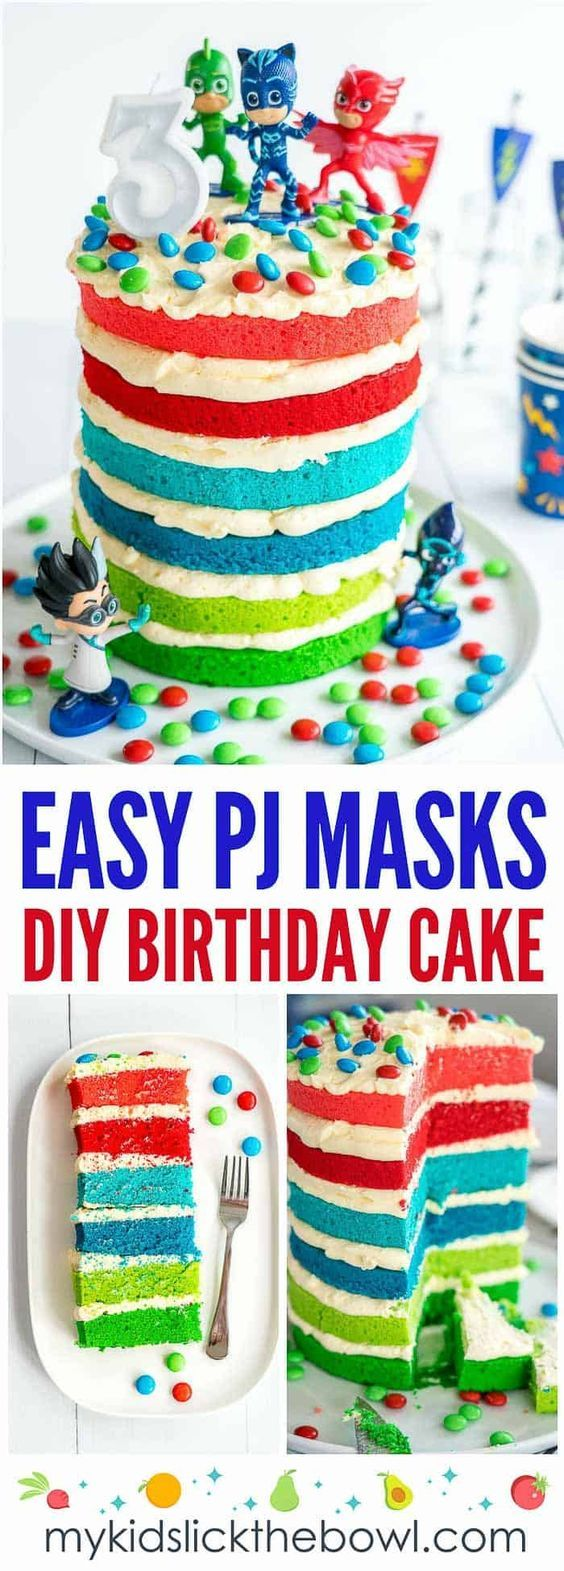 Pj Masks Cake Recipe With Images Diy Birthday Cake Little